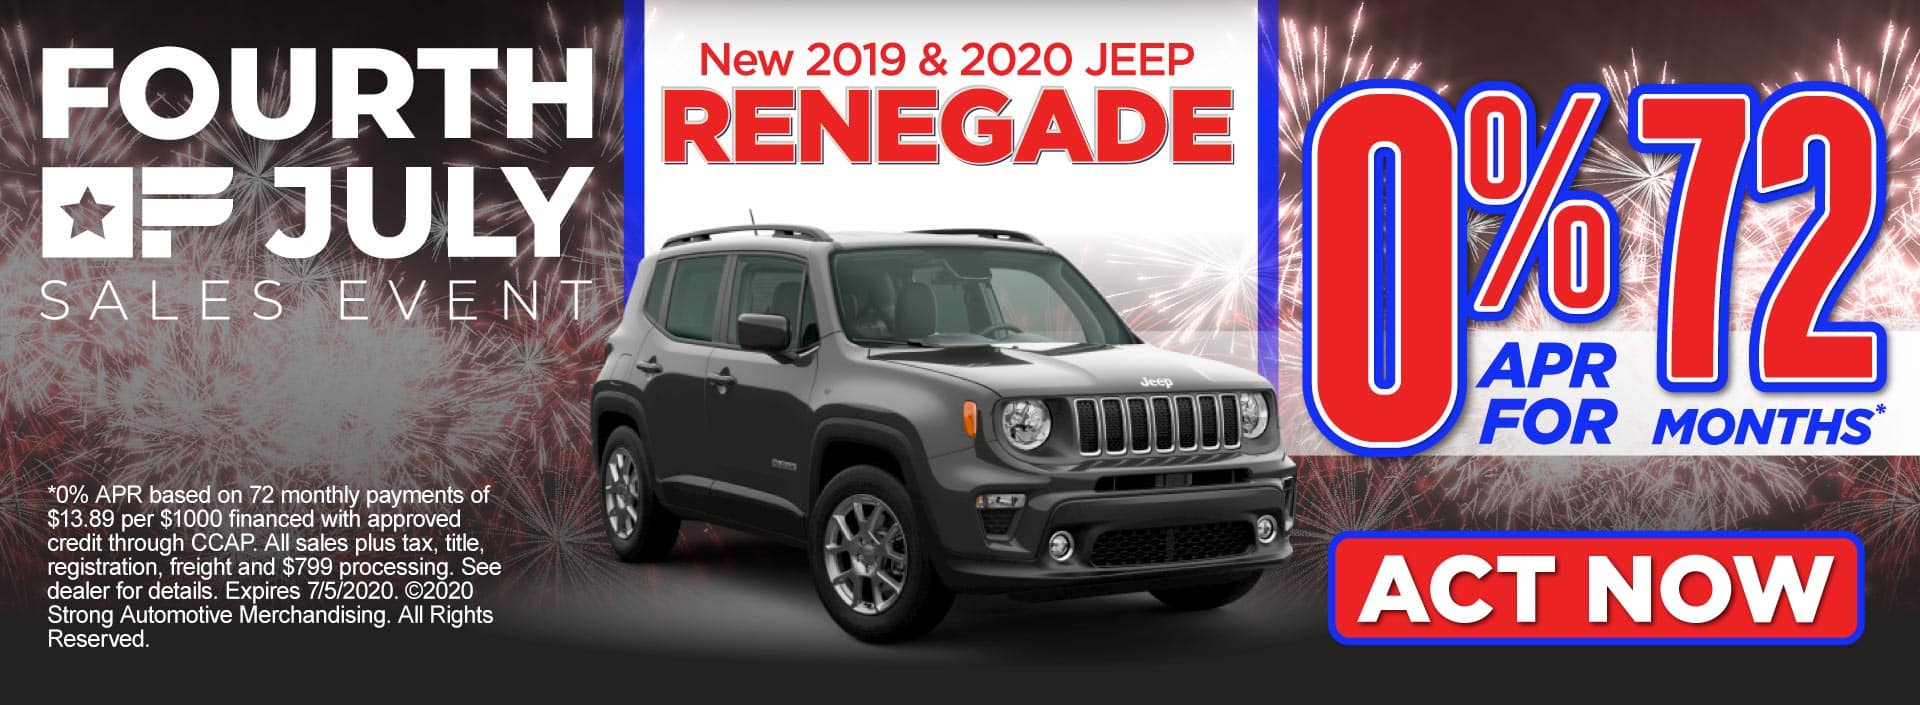 2019 & 2020 Jeep Renegade - 0% APR for 72 months - Click to View Inventory